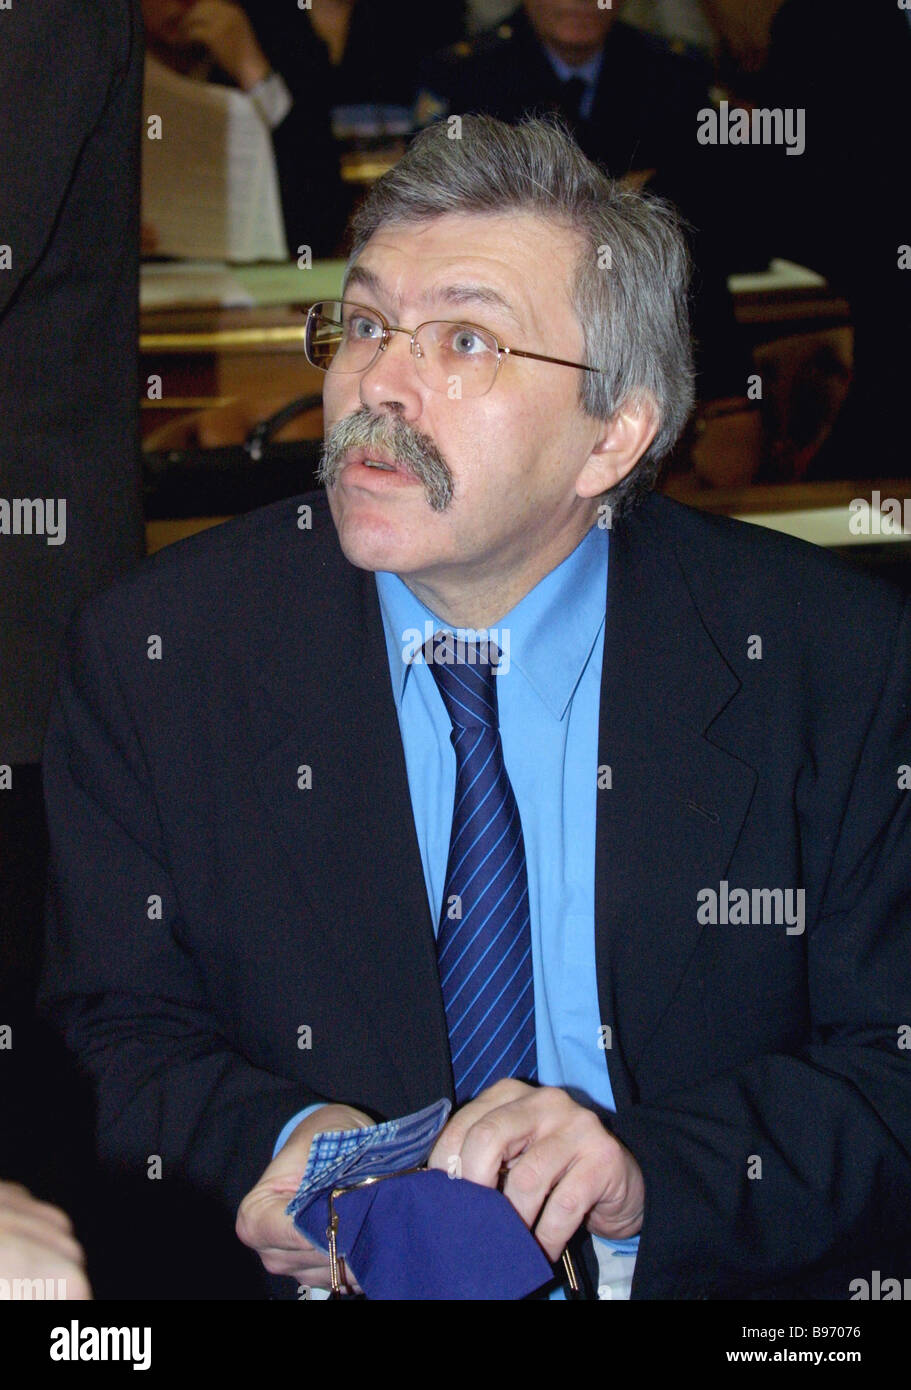 The Russian State Statistical Committee Chairman Vladimir Sokolin reporting on results of the 2002 all Russian population - Stock Image